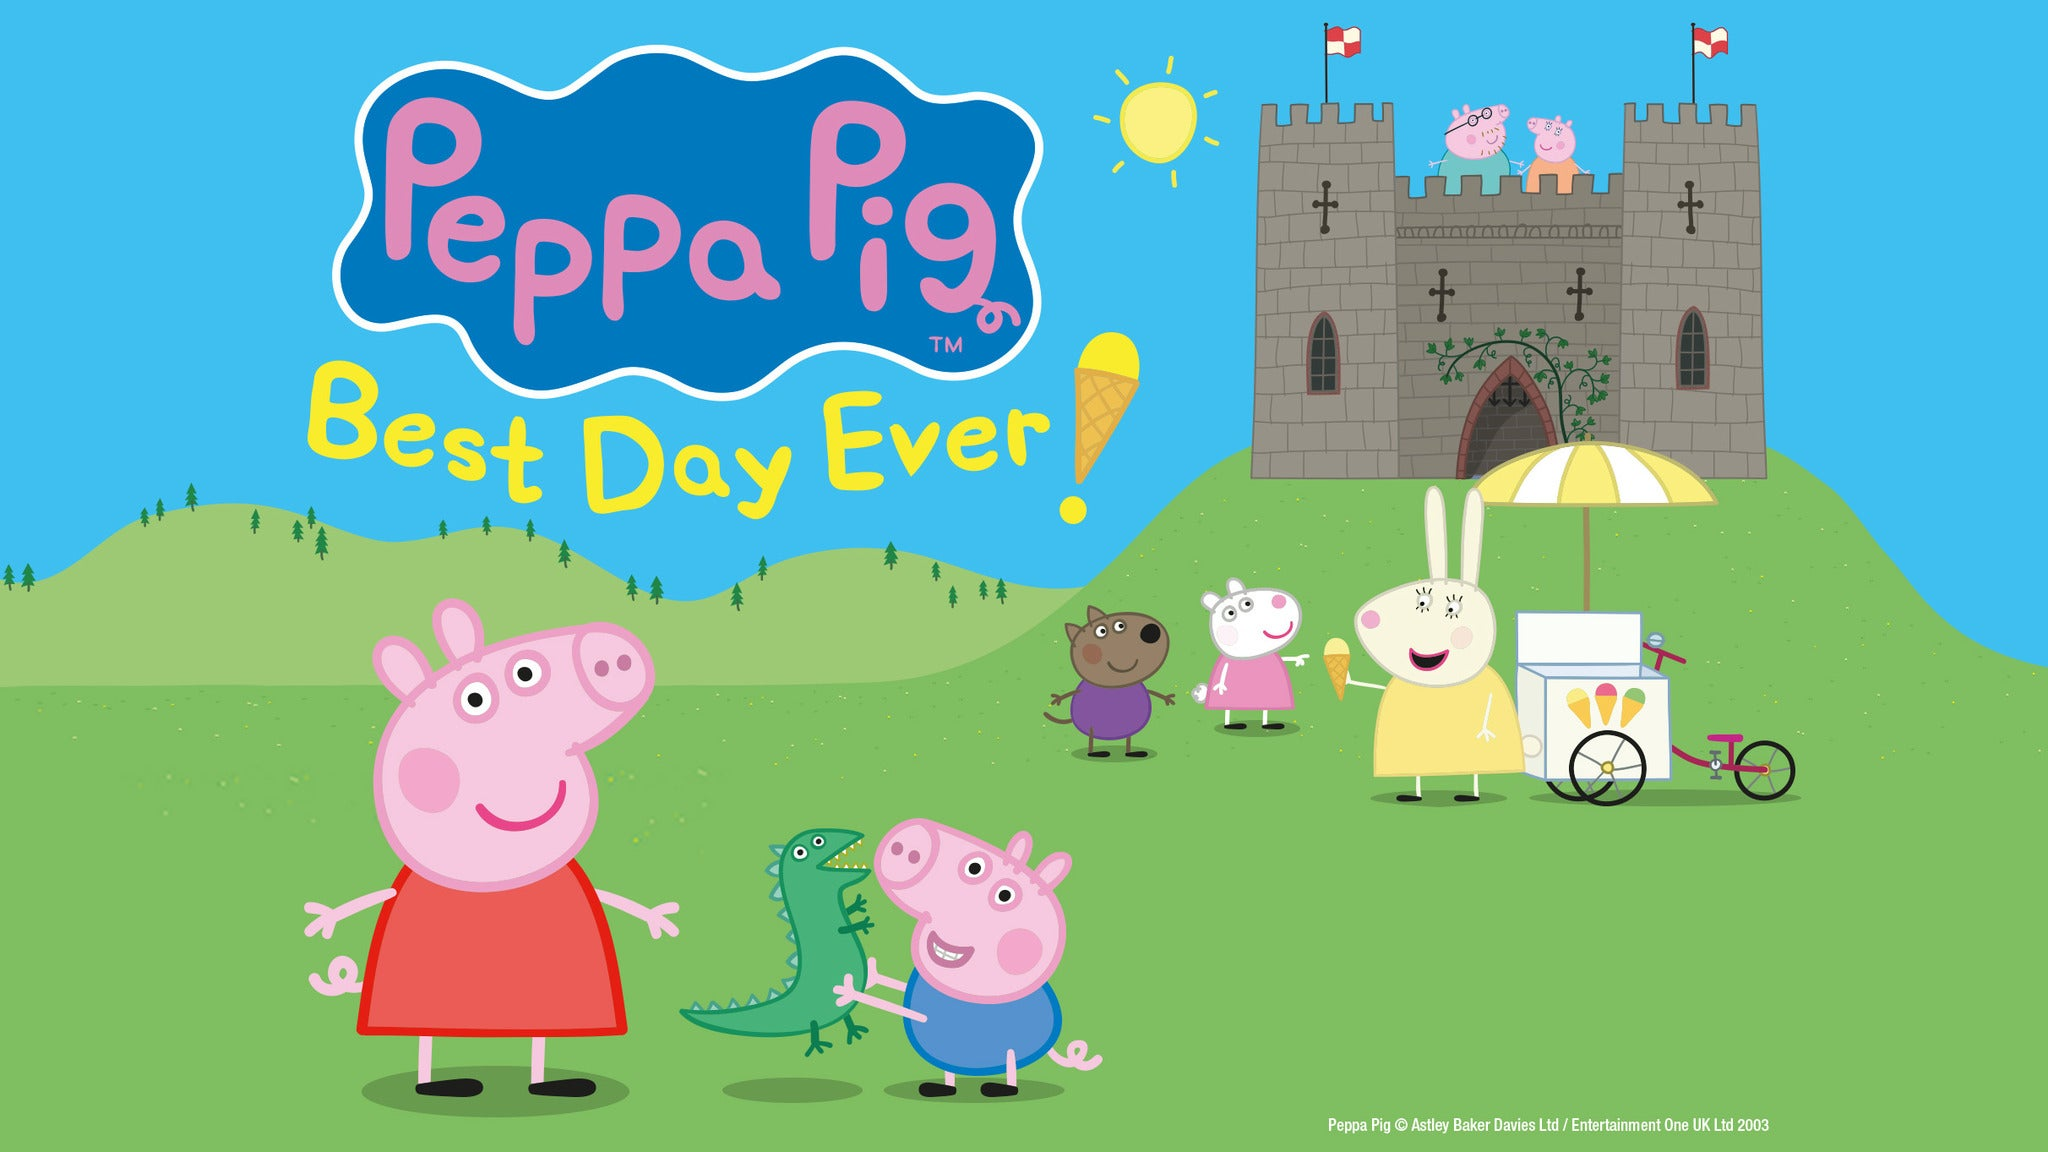 Peppa Pig Live! Peppa's Adventure at San Jose Civic